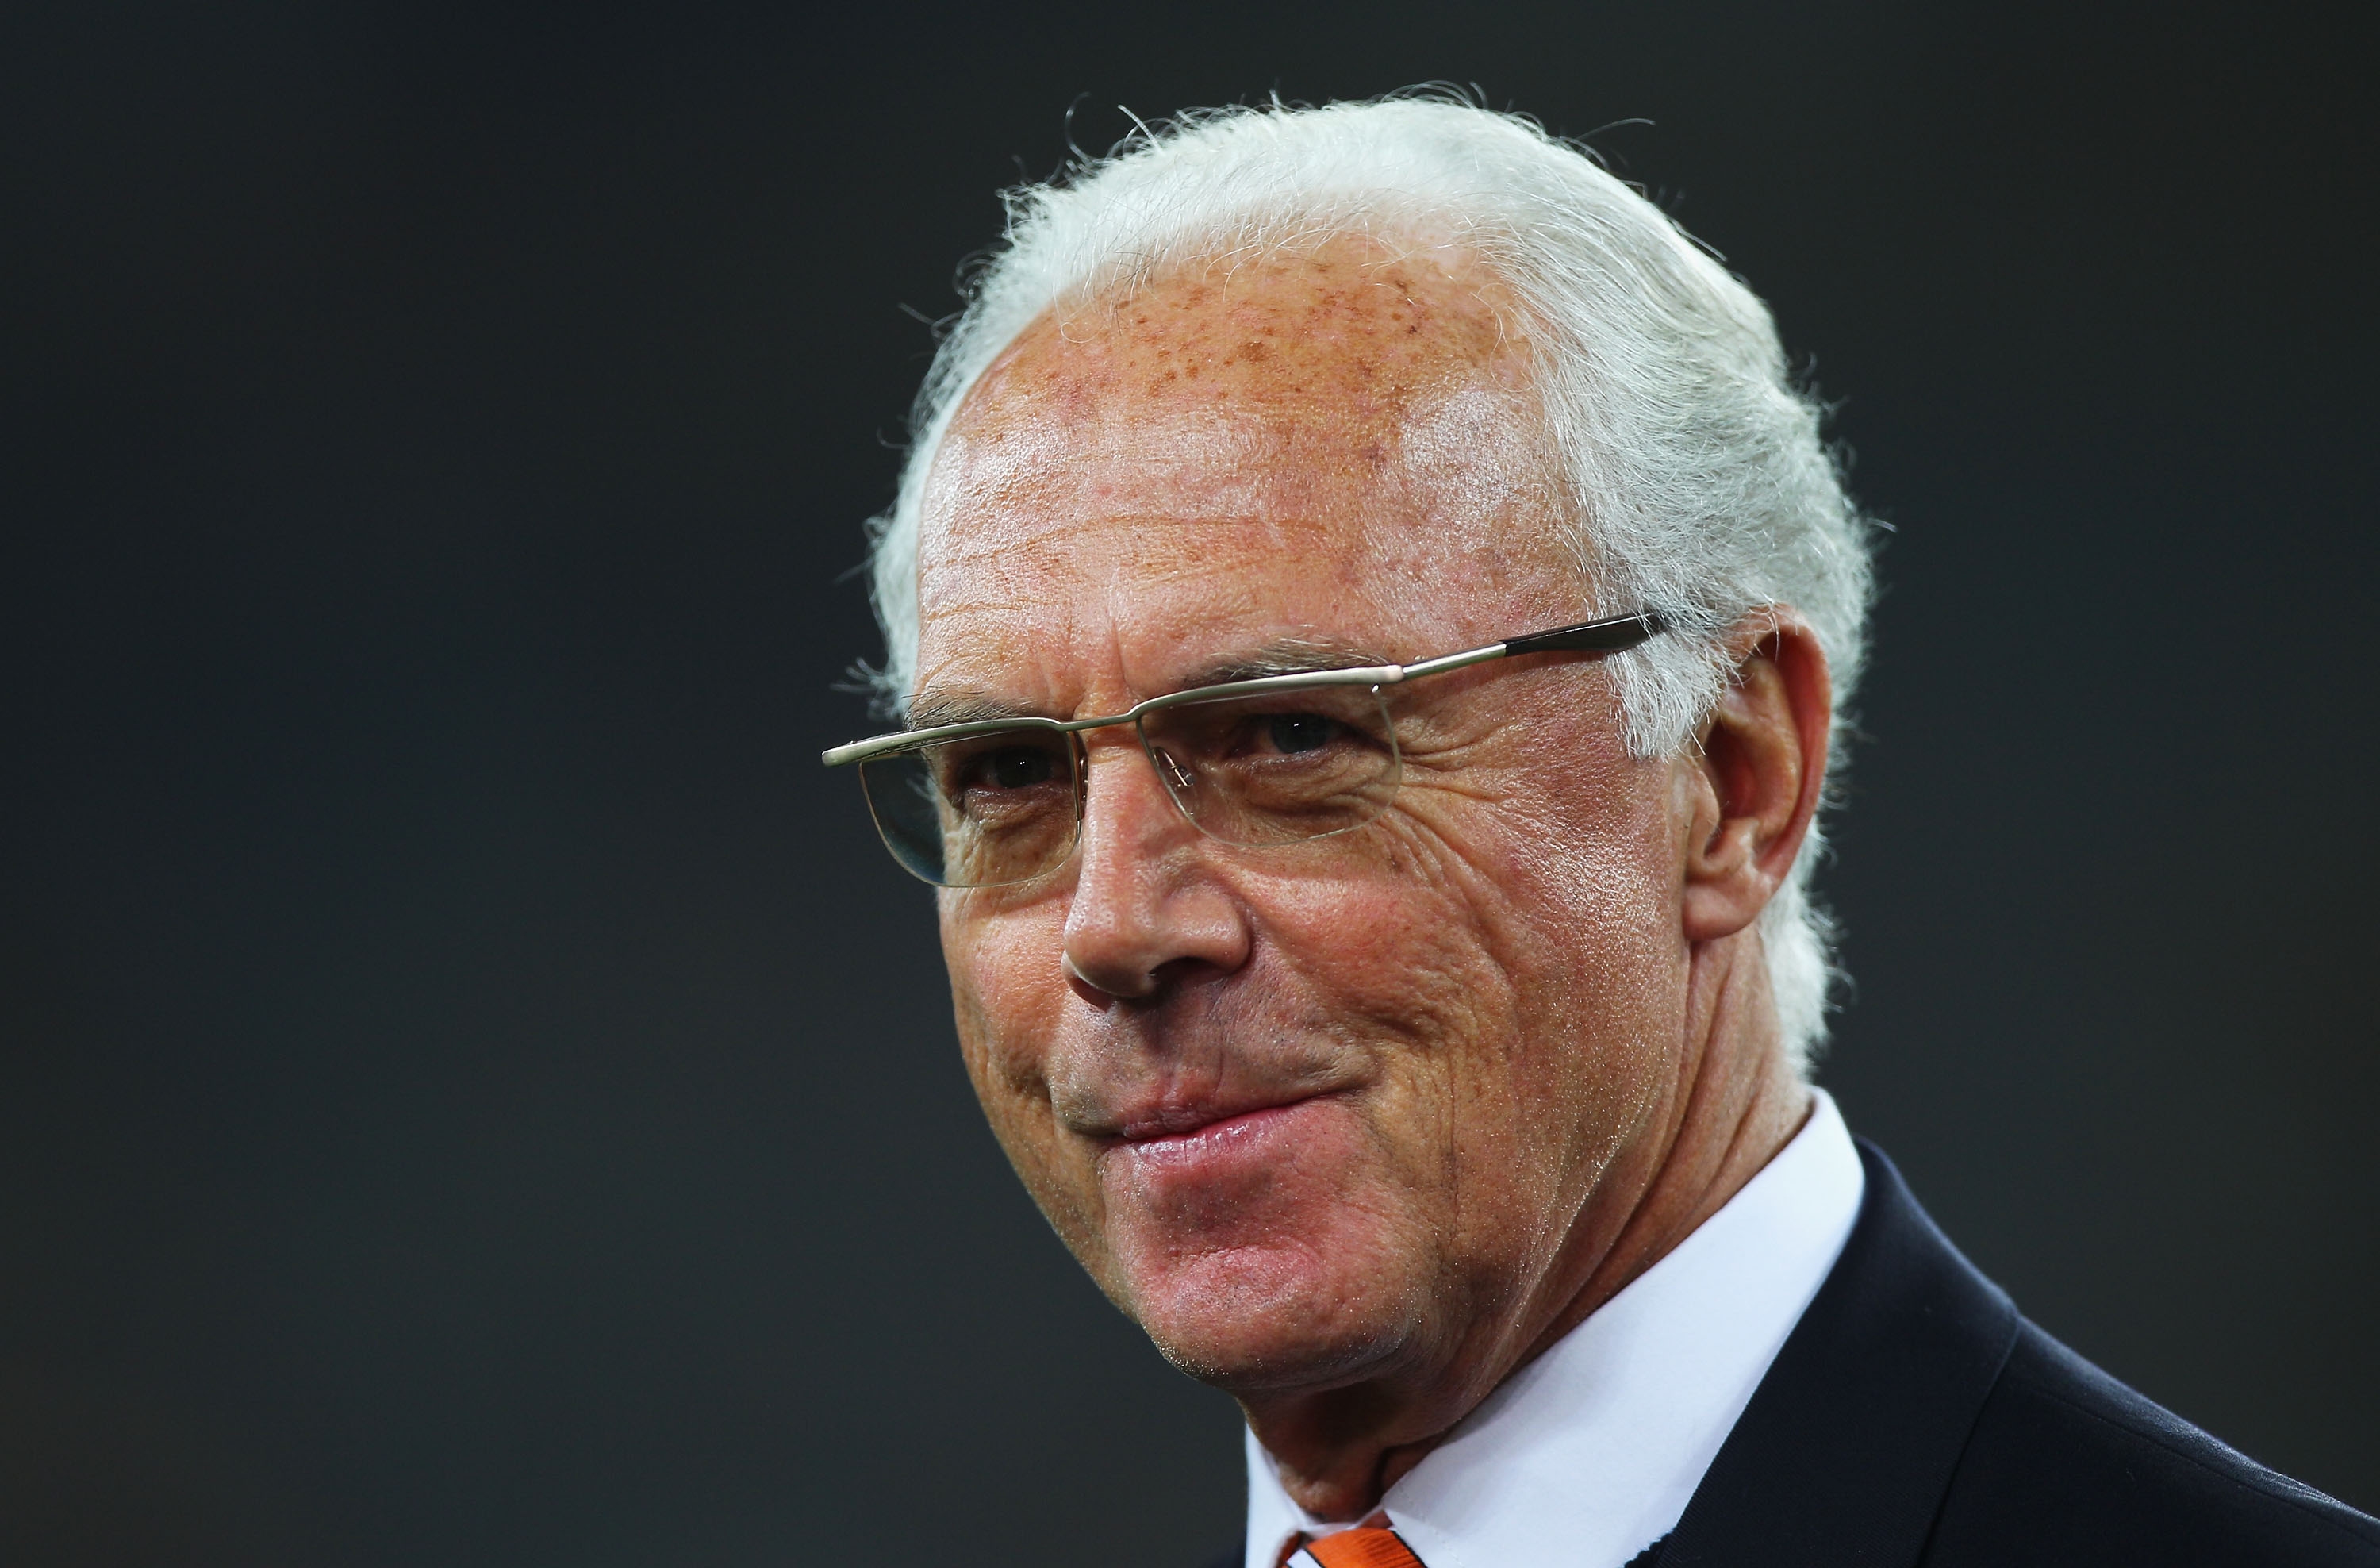 DURBAN, SOUTH AFRICA - JULY 07:  Franz Beckenbauer attends the 2010 FIFA World Cup South Africa Semi Final match between Germany and Spain at Durban Stadium on July 7, 2010 in Durban, South Africa.  (Photo by Michael Steele/Getty Images)